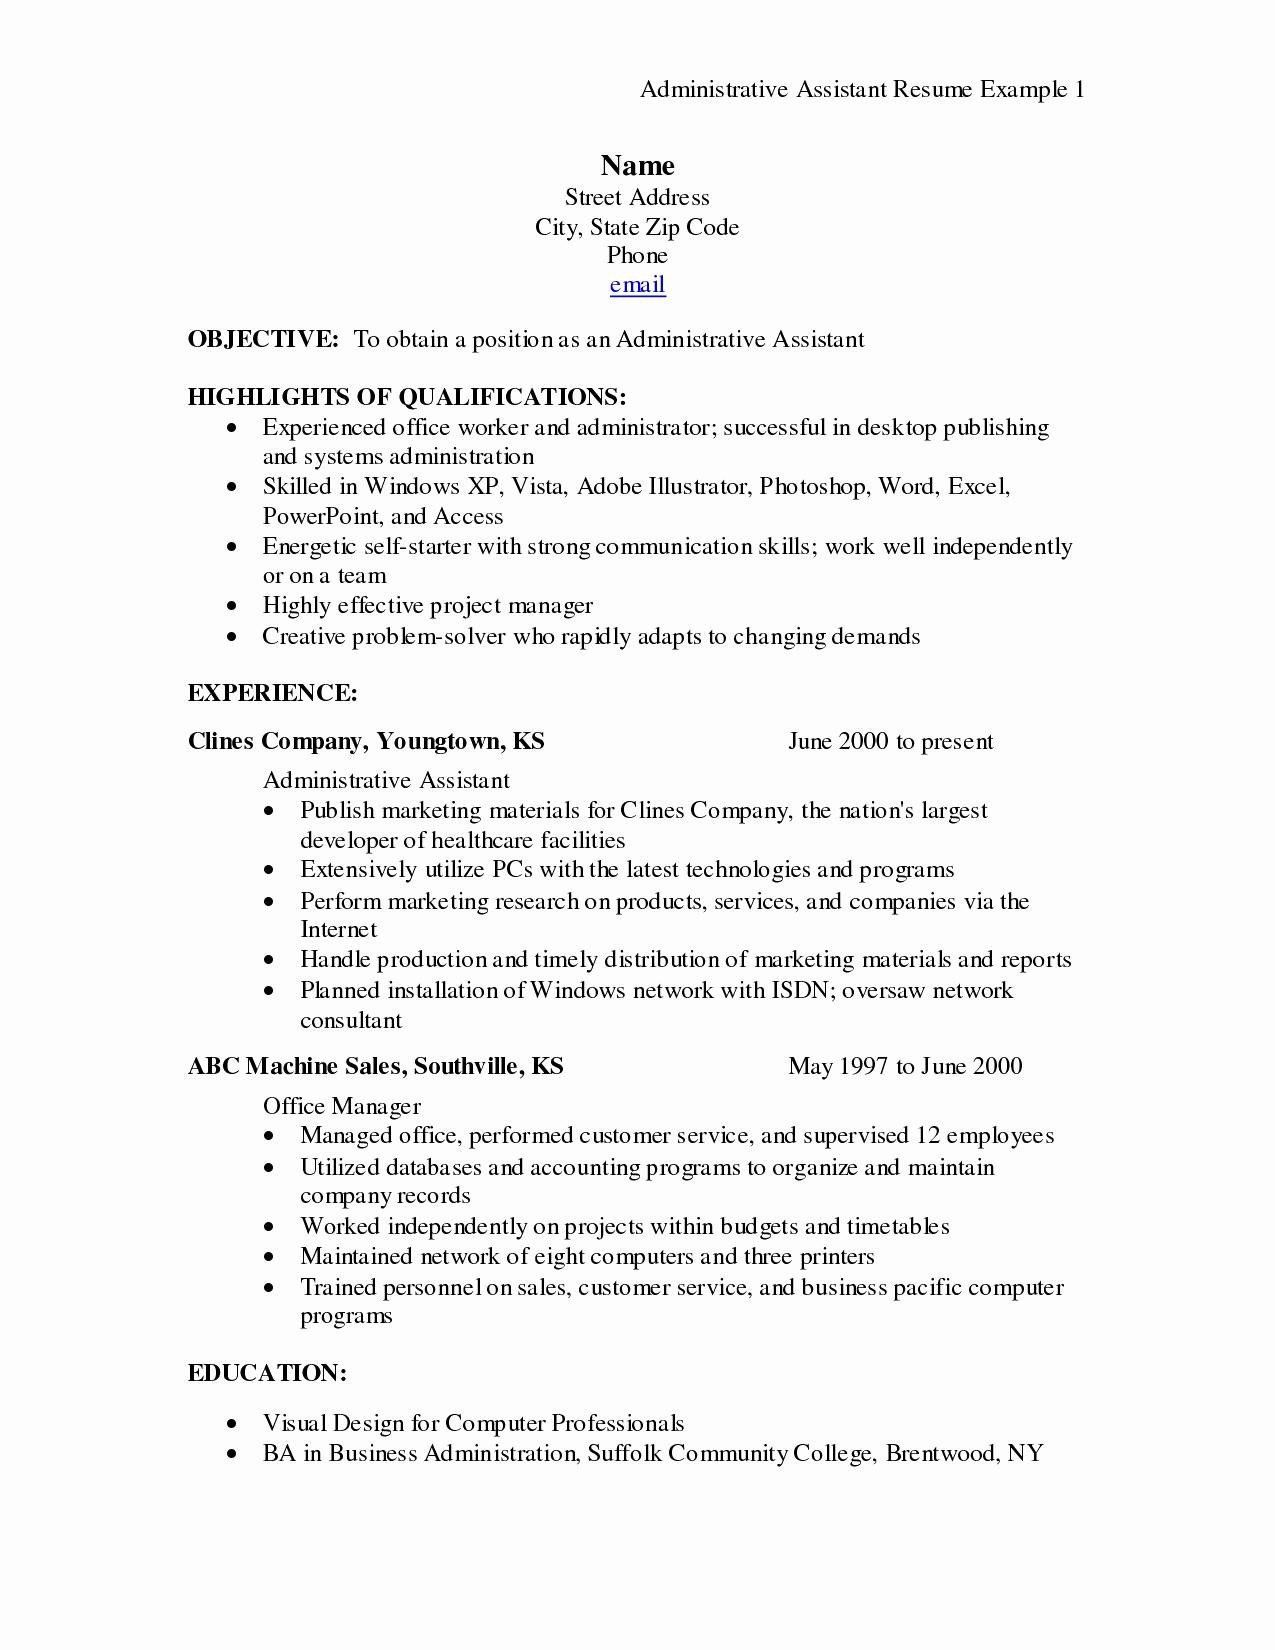 medical administrative assistant resume accounts payable description for skills and Resume Administrative Assistant Resume 2020